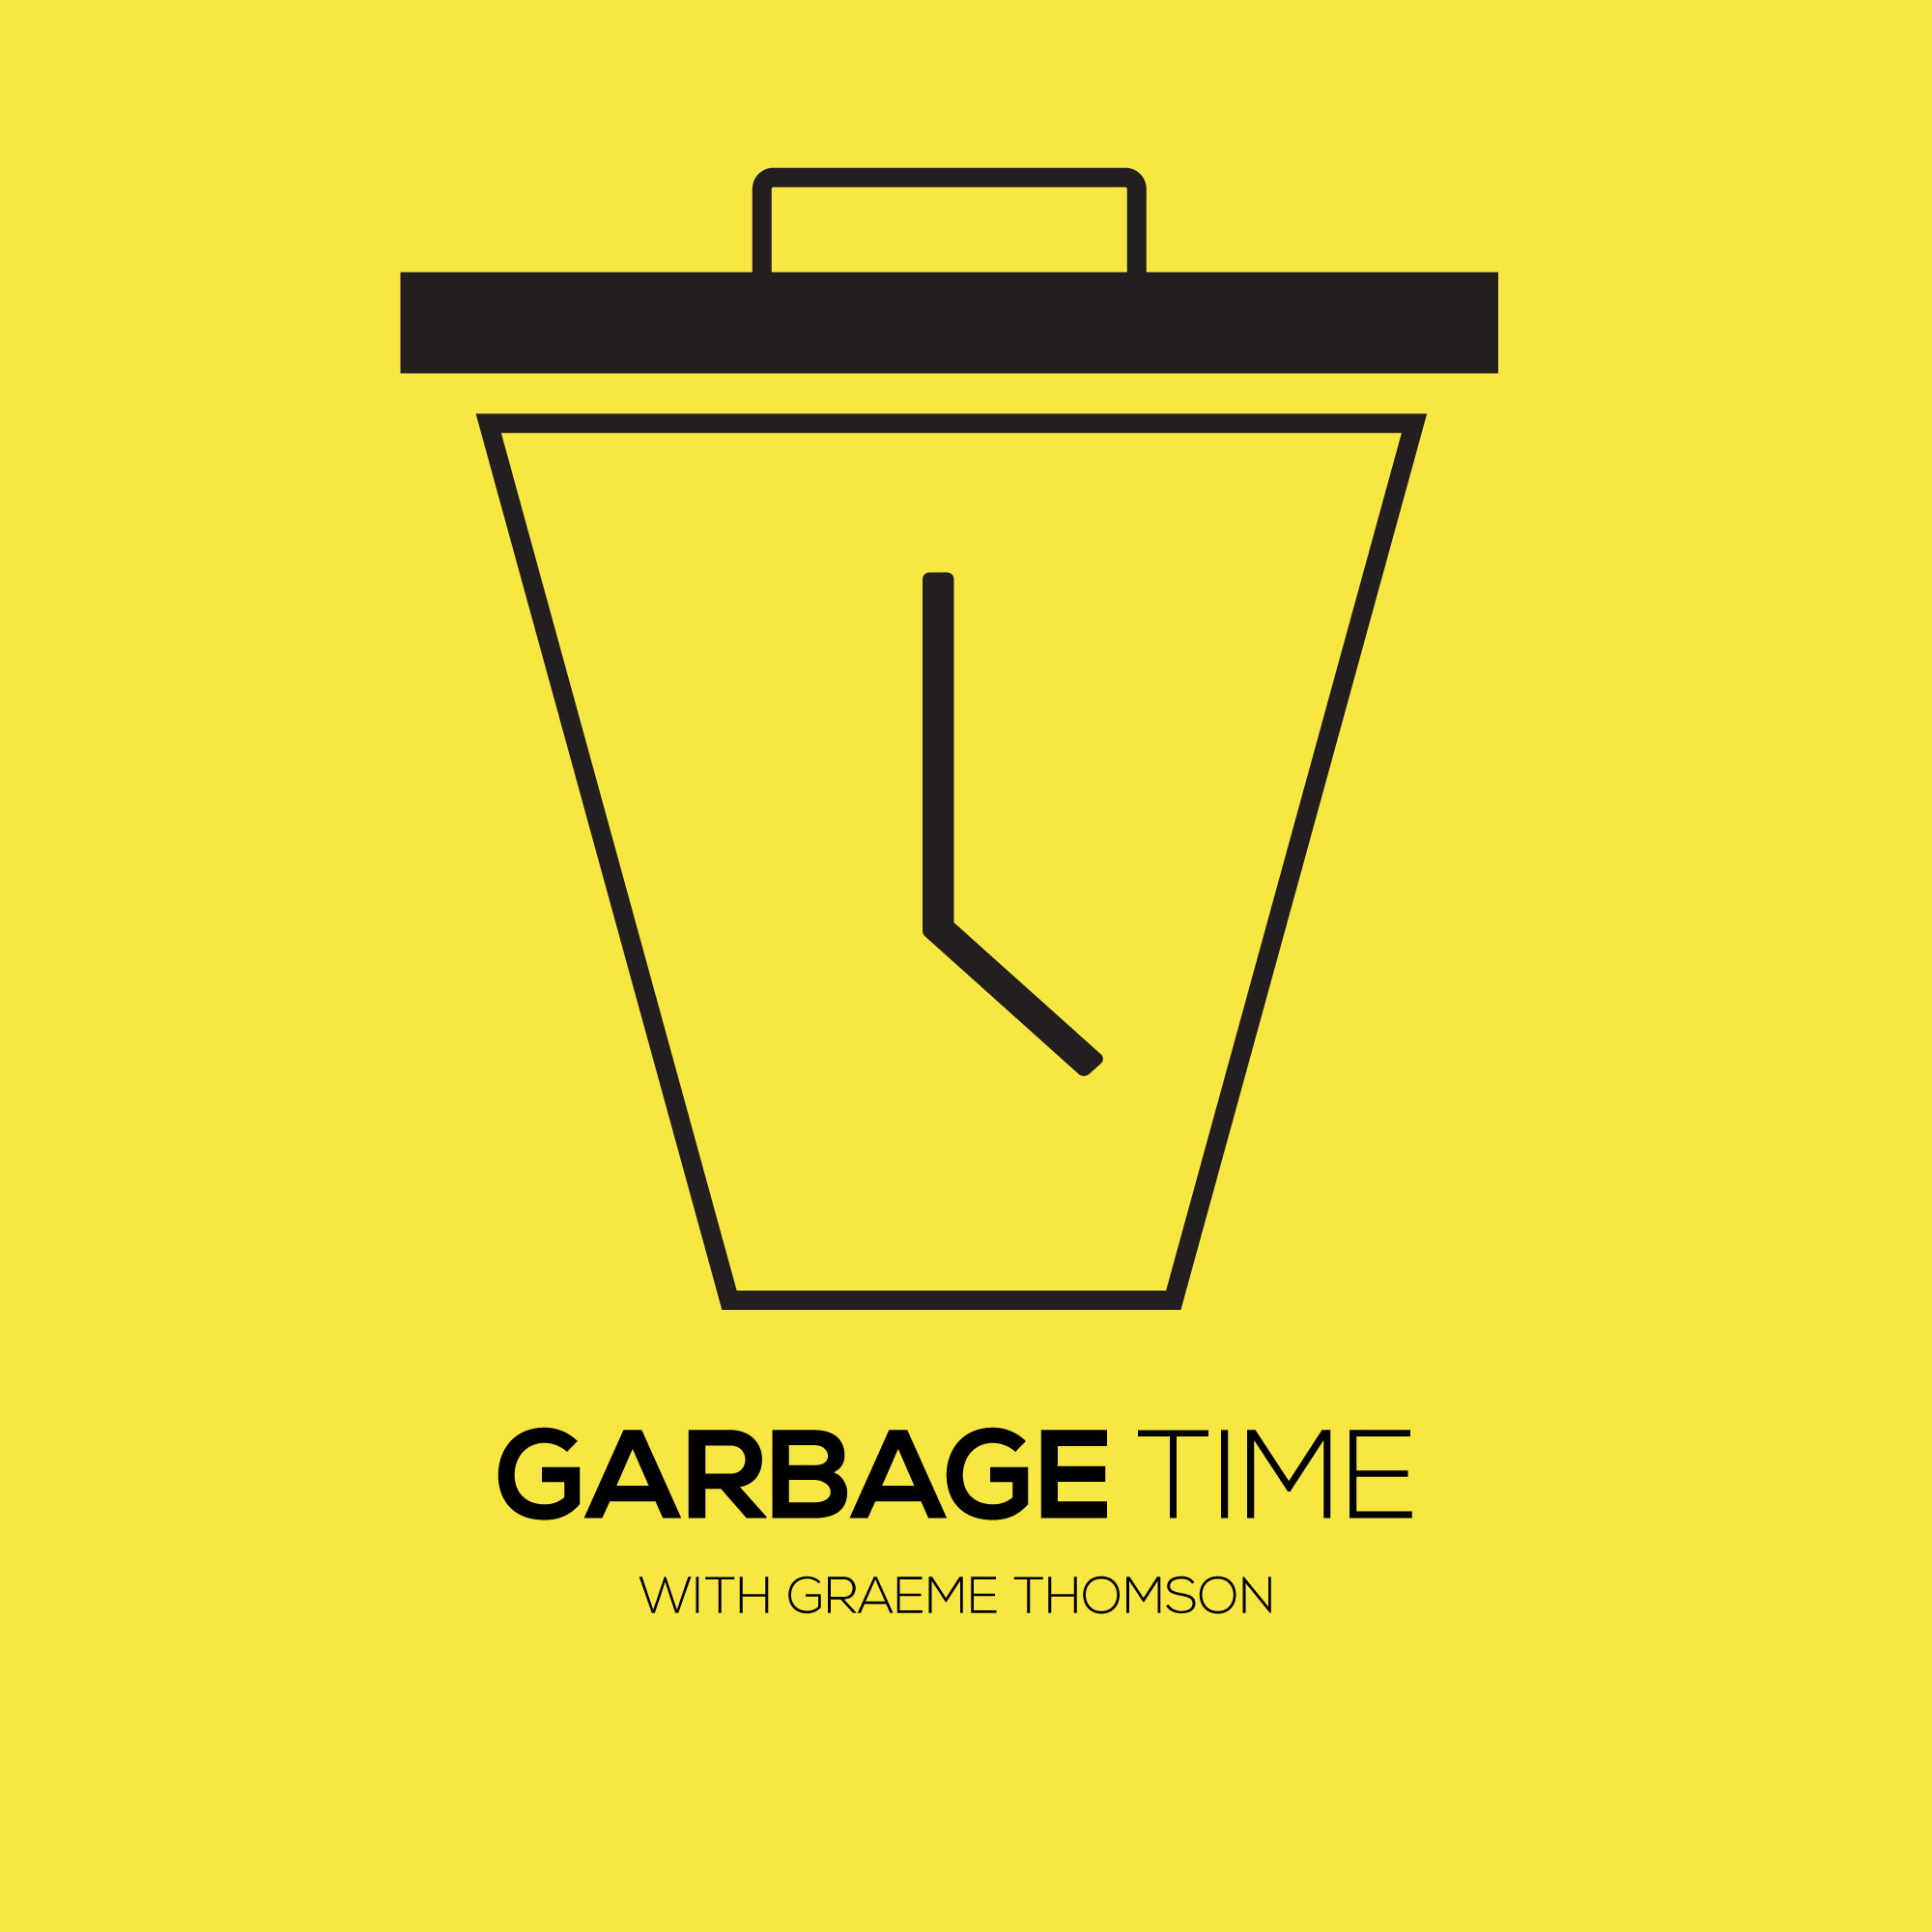 Garbage time logo (1)